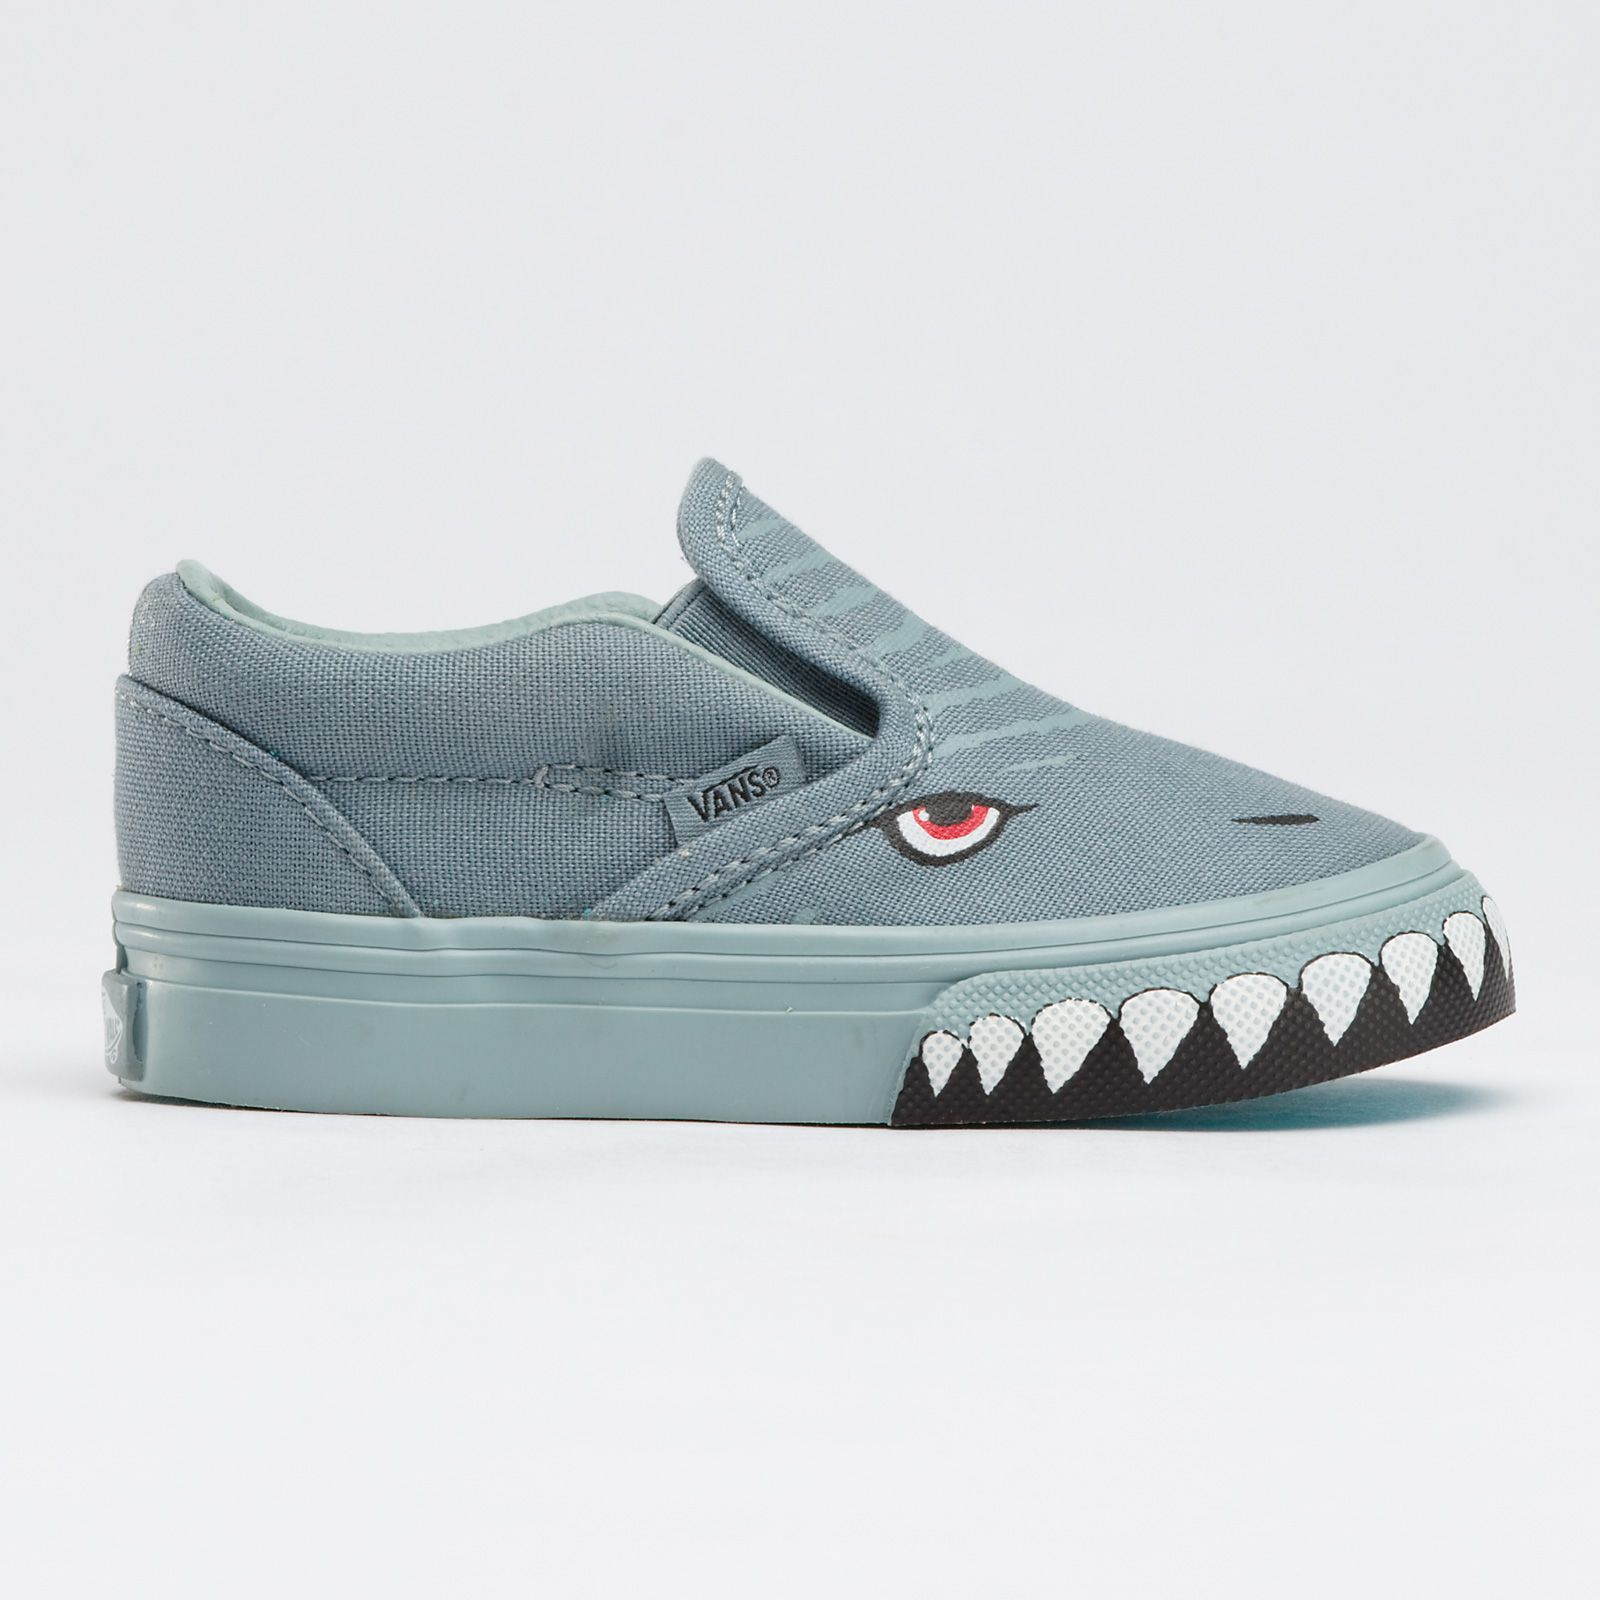 $35 Shark Toddler Shoes by Vans